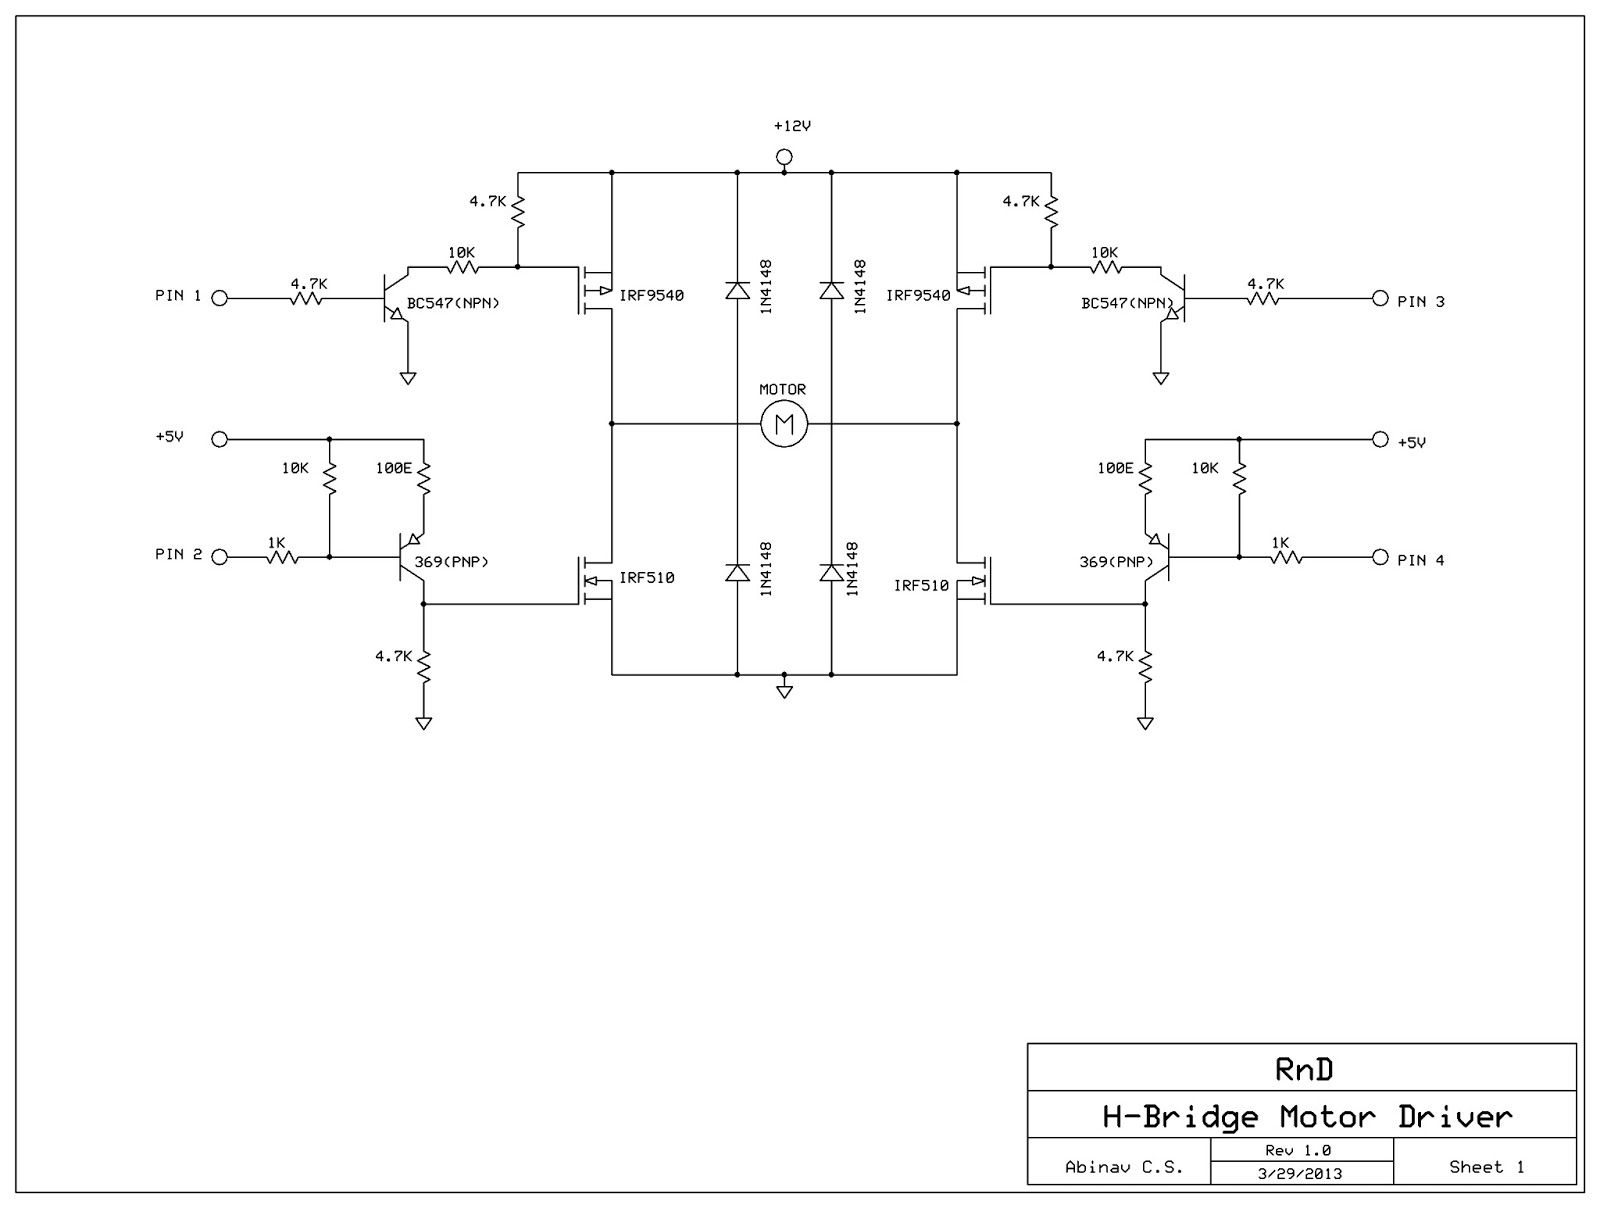 Ge Radio Schematic Not Lossing Wiring Diagram Ham Circuit Mipl H Bridge Motor Driver Using Mosfet S And Super